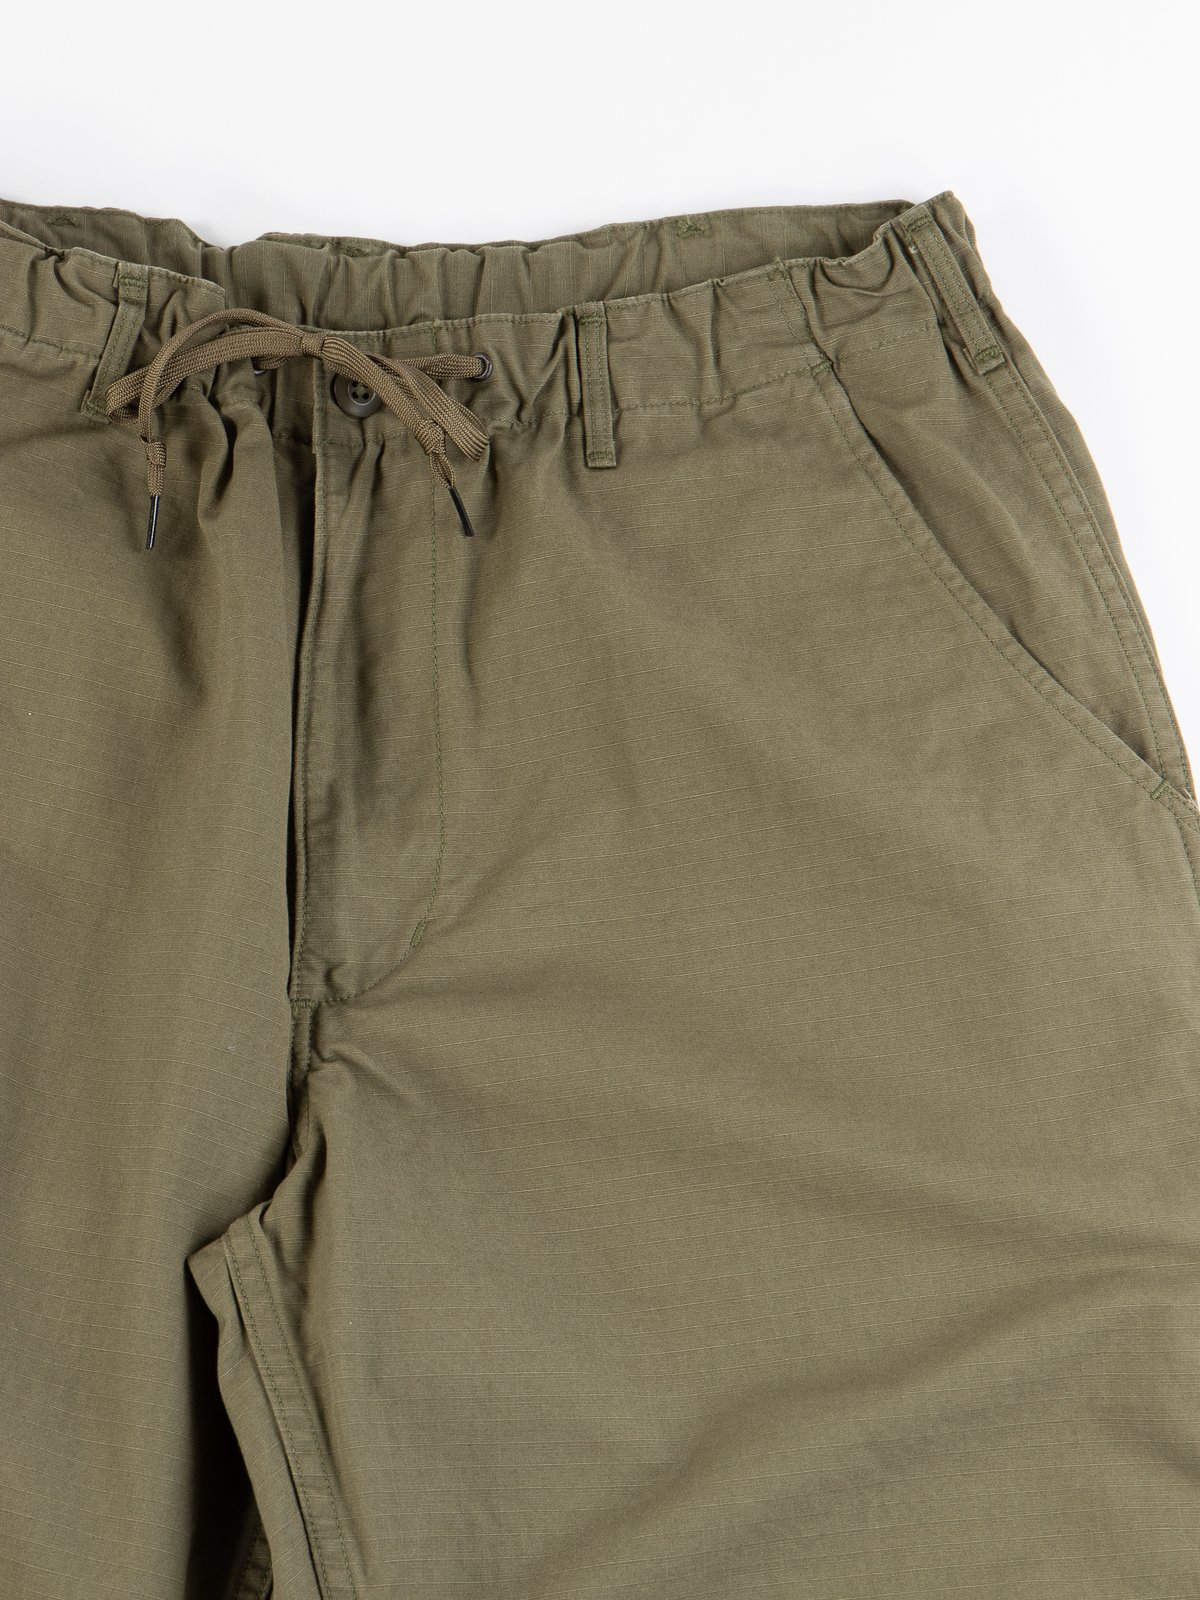 Army Green Ripstop TBB Service Pant - Image 4